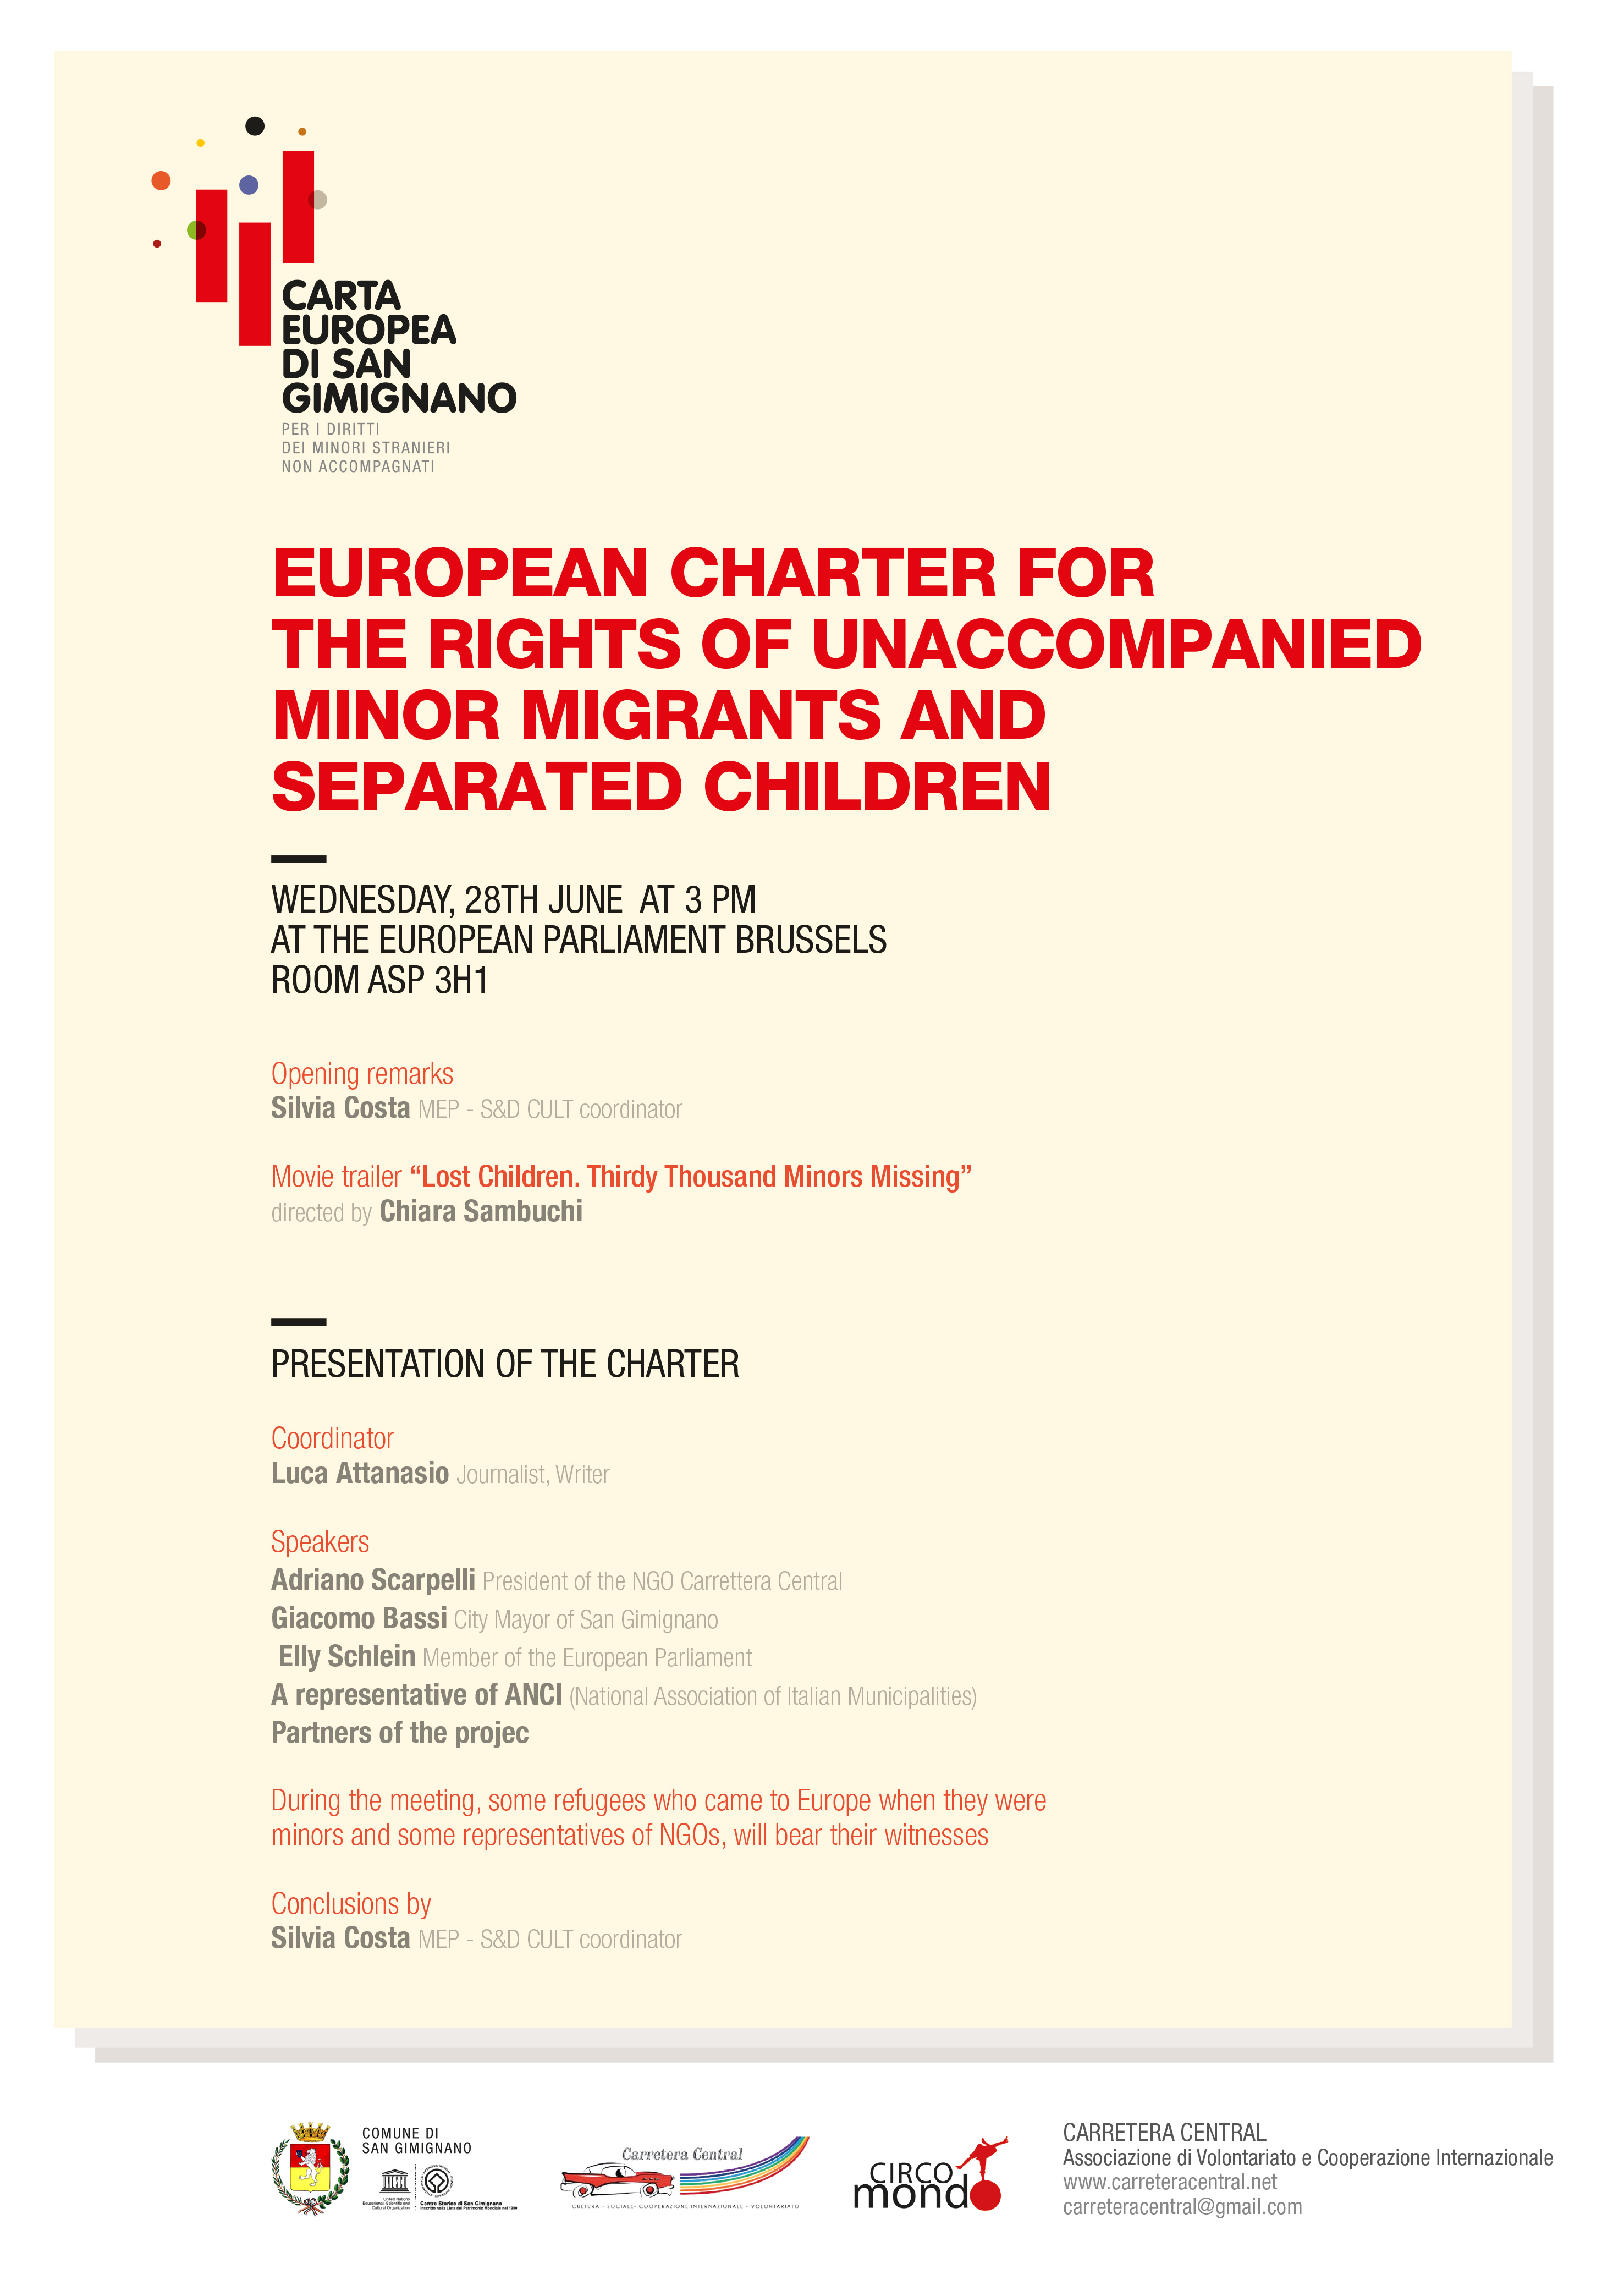 european charter on ijjo about the presentation to the European Parliament Brussel